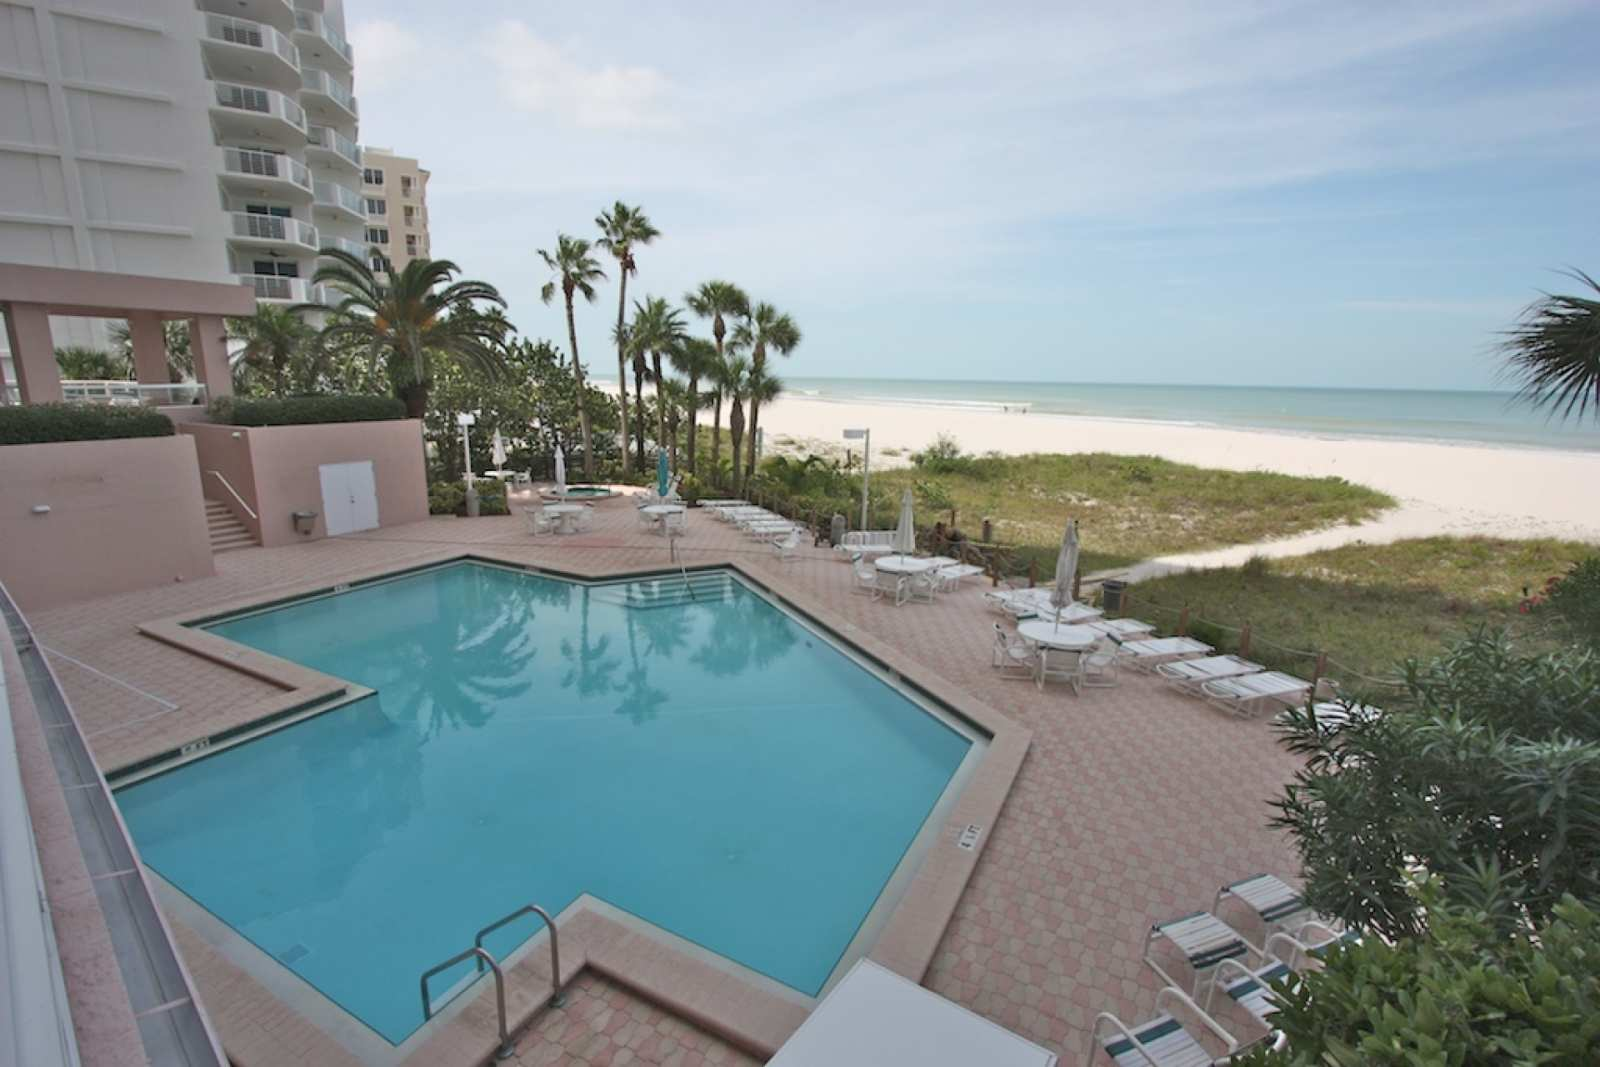 Clearwater Vacation Al 12b Crescent Beach Club Condo On Itrip